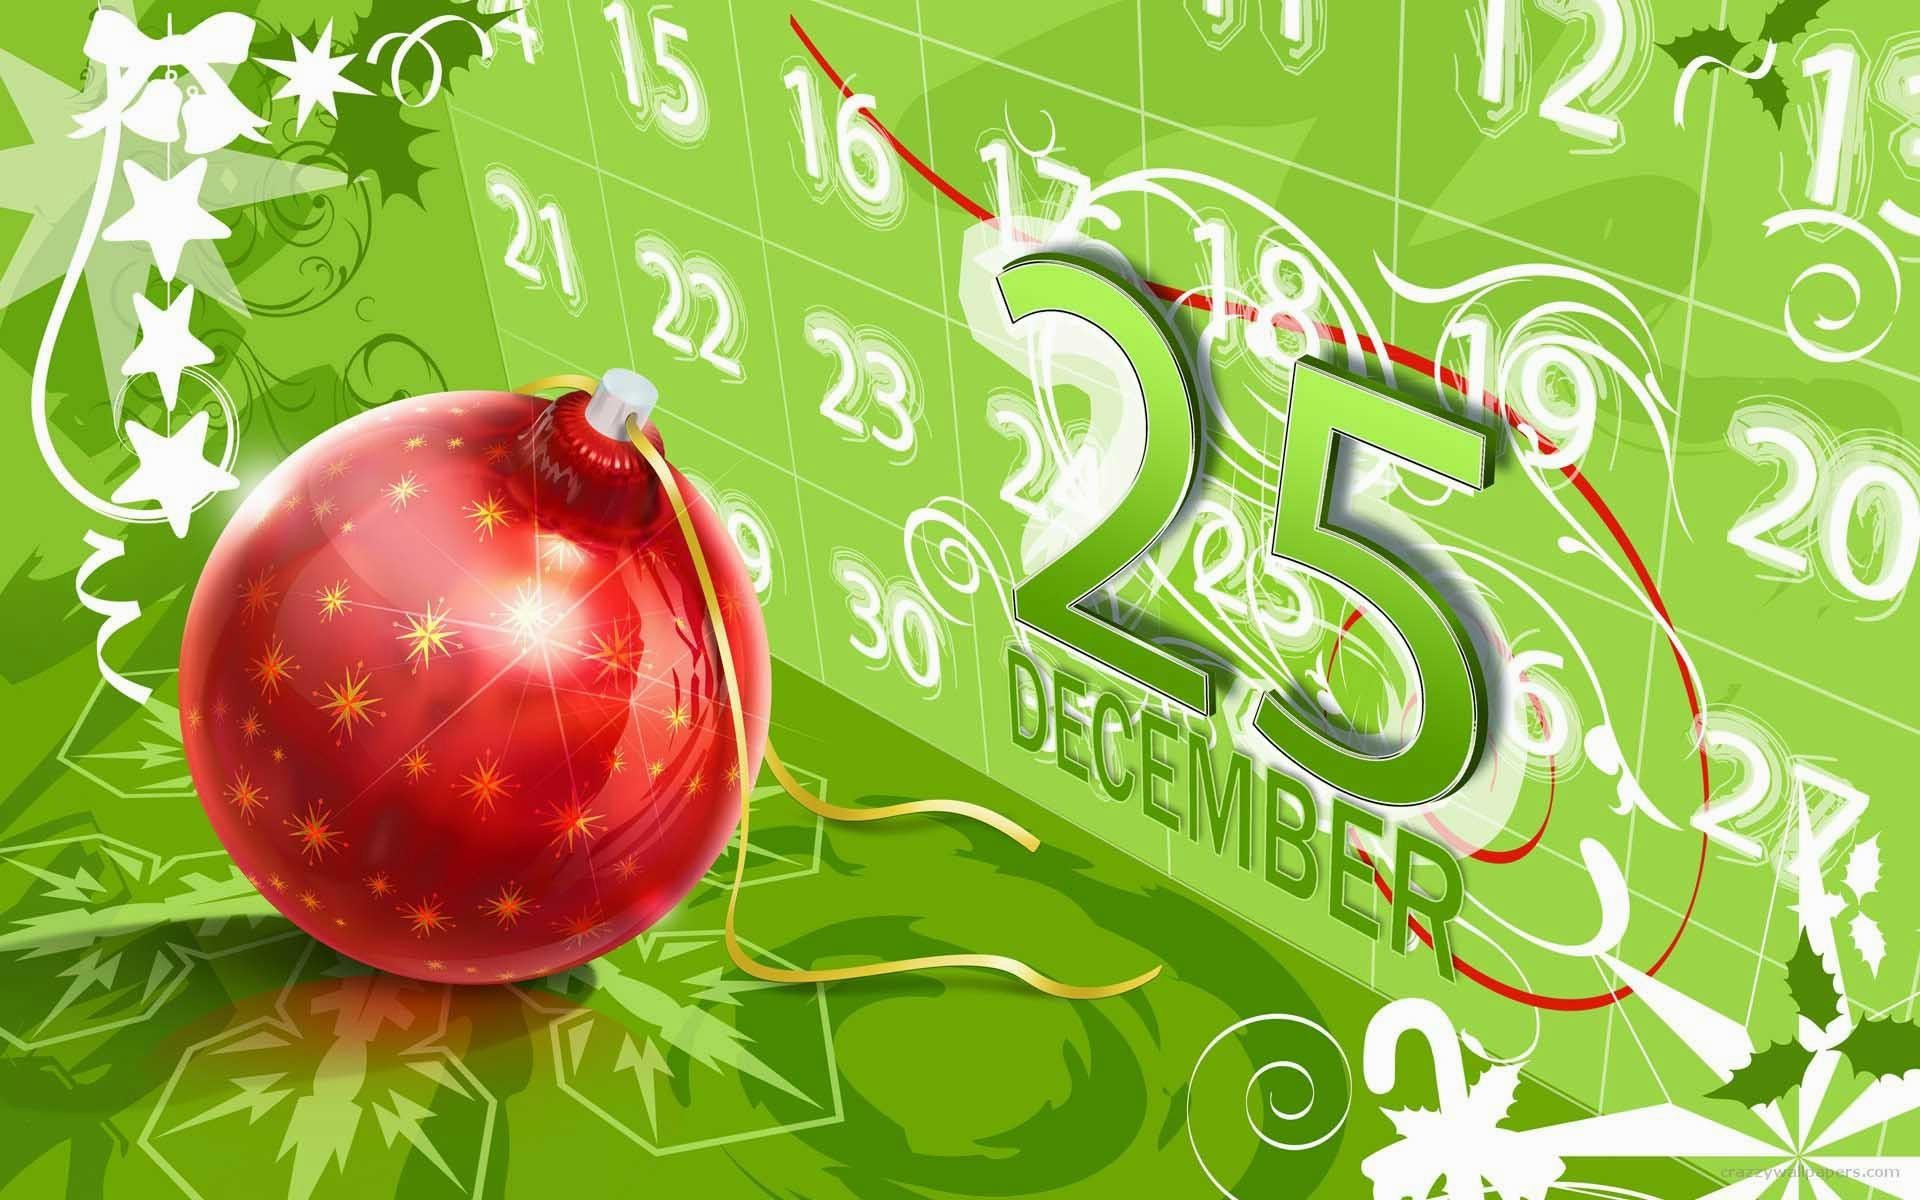 Christmas Countdown Wallpaper For Desktop Posted By John Johnson